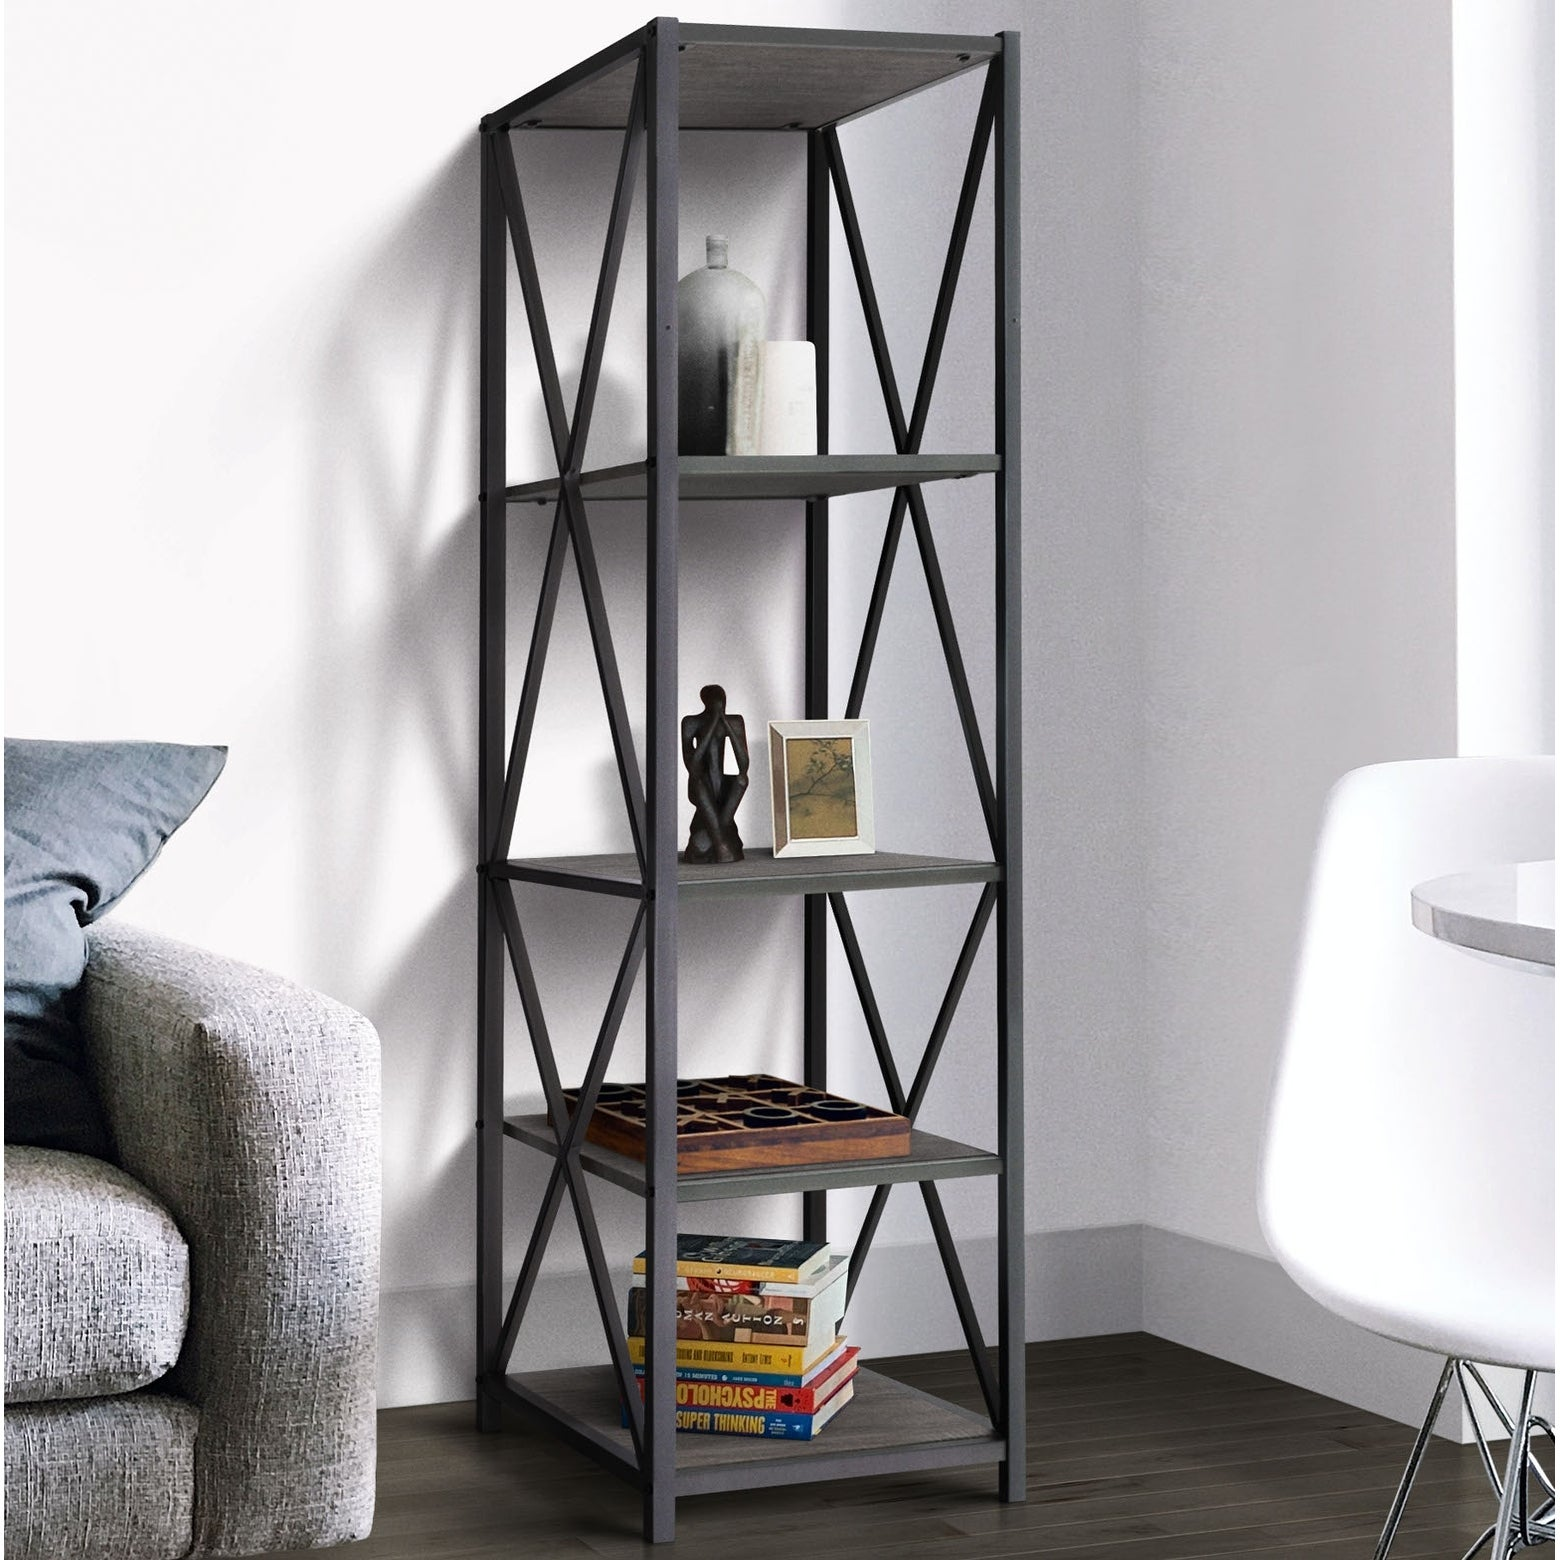 Zenvida Bookshelf 5 Tier Industrial Metal Wood Modern Etagere Tall Bookcase Open Display Shelves Organizer Overstock 32265270